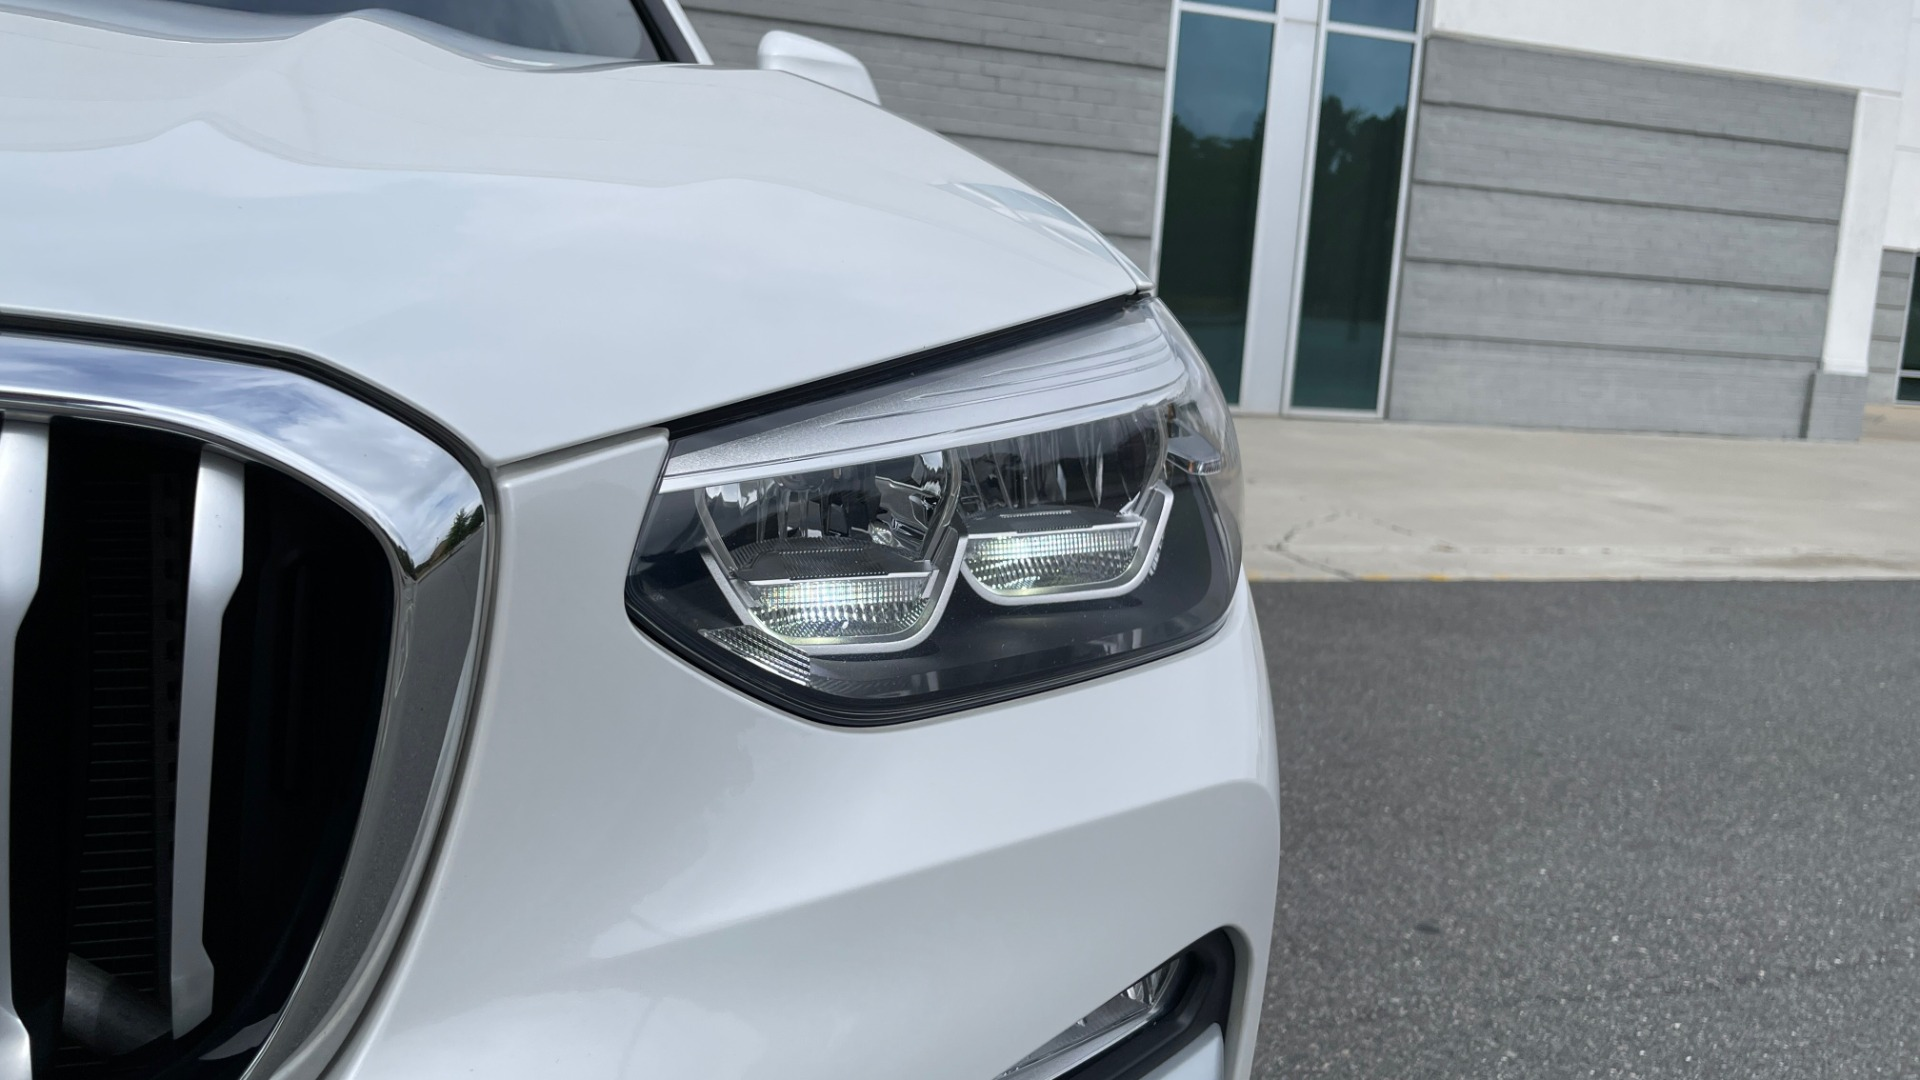 Used 2018 BMW X3 XDRIVE30I / NAV / PANO-ROOF / HTD STS / PARK DIST CNTRL / REARVIEW for sale $38,995 at Formula Imports in Charlotte NC 28227 13